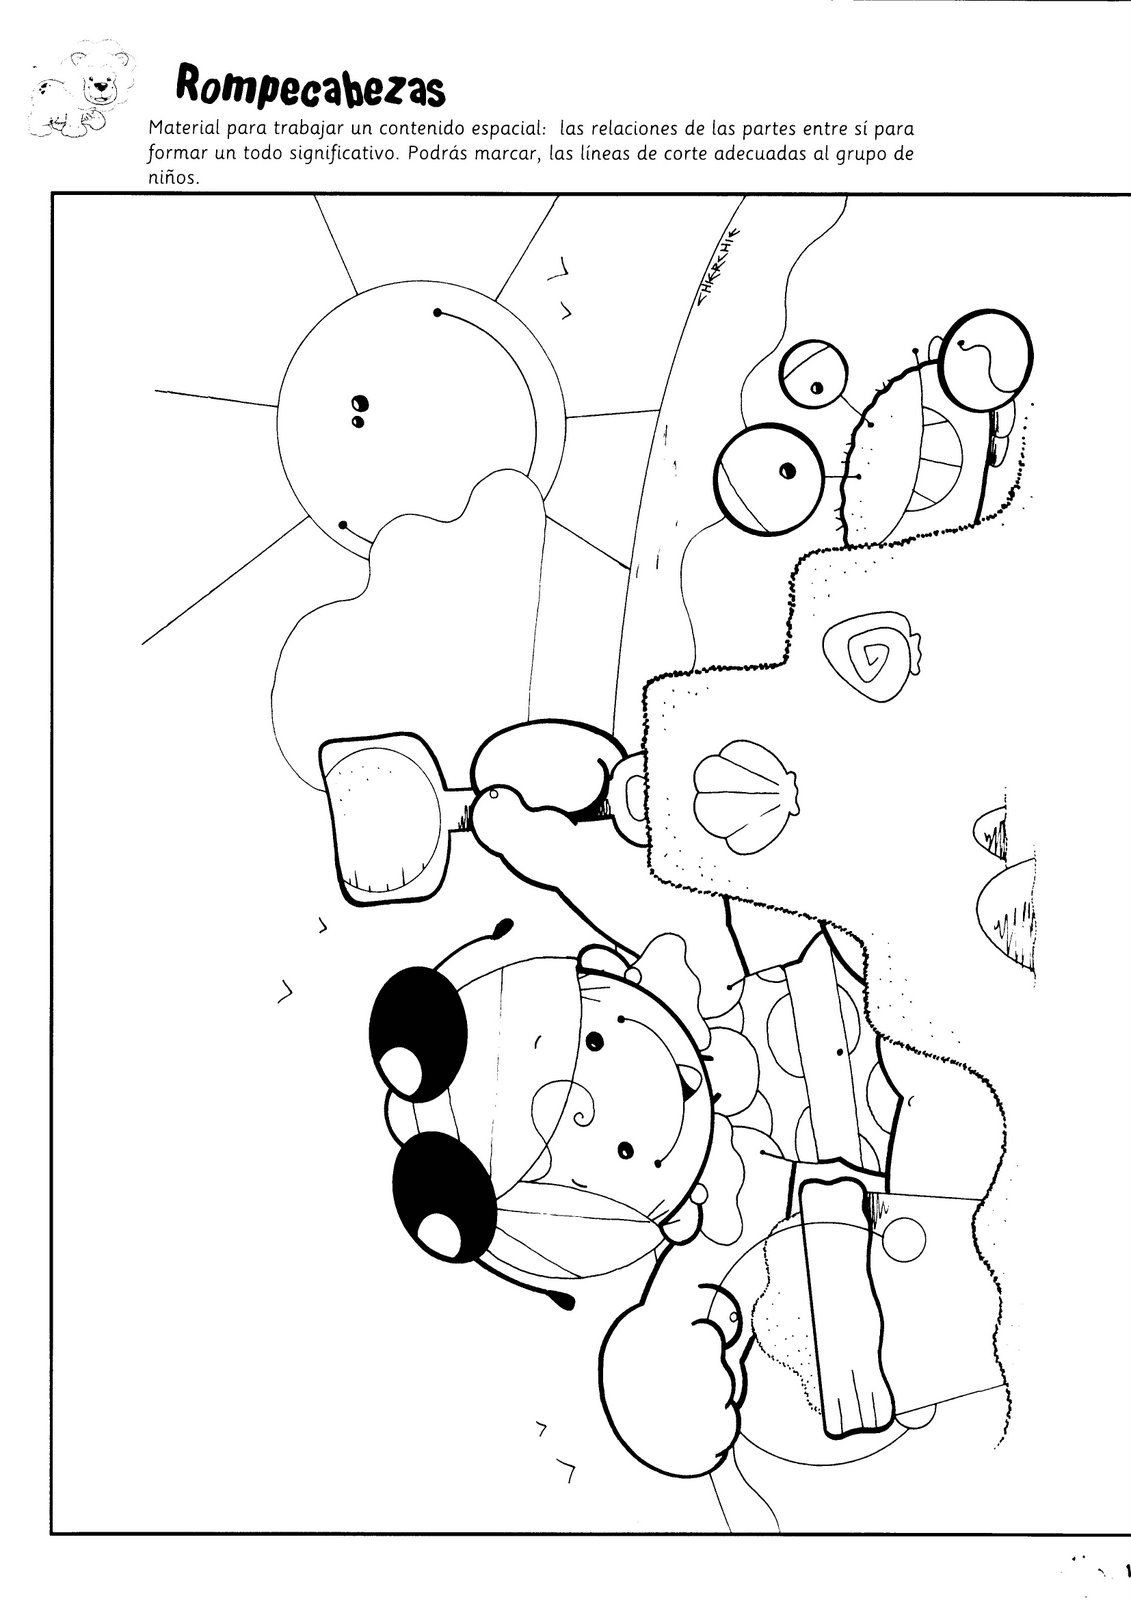 Imagenes de rompecabezas para armar | Drawing for kids, Coloring pages,  Drawings